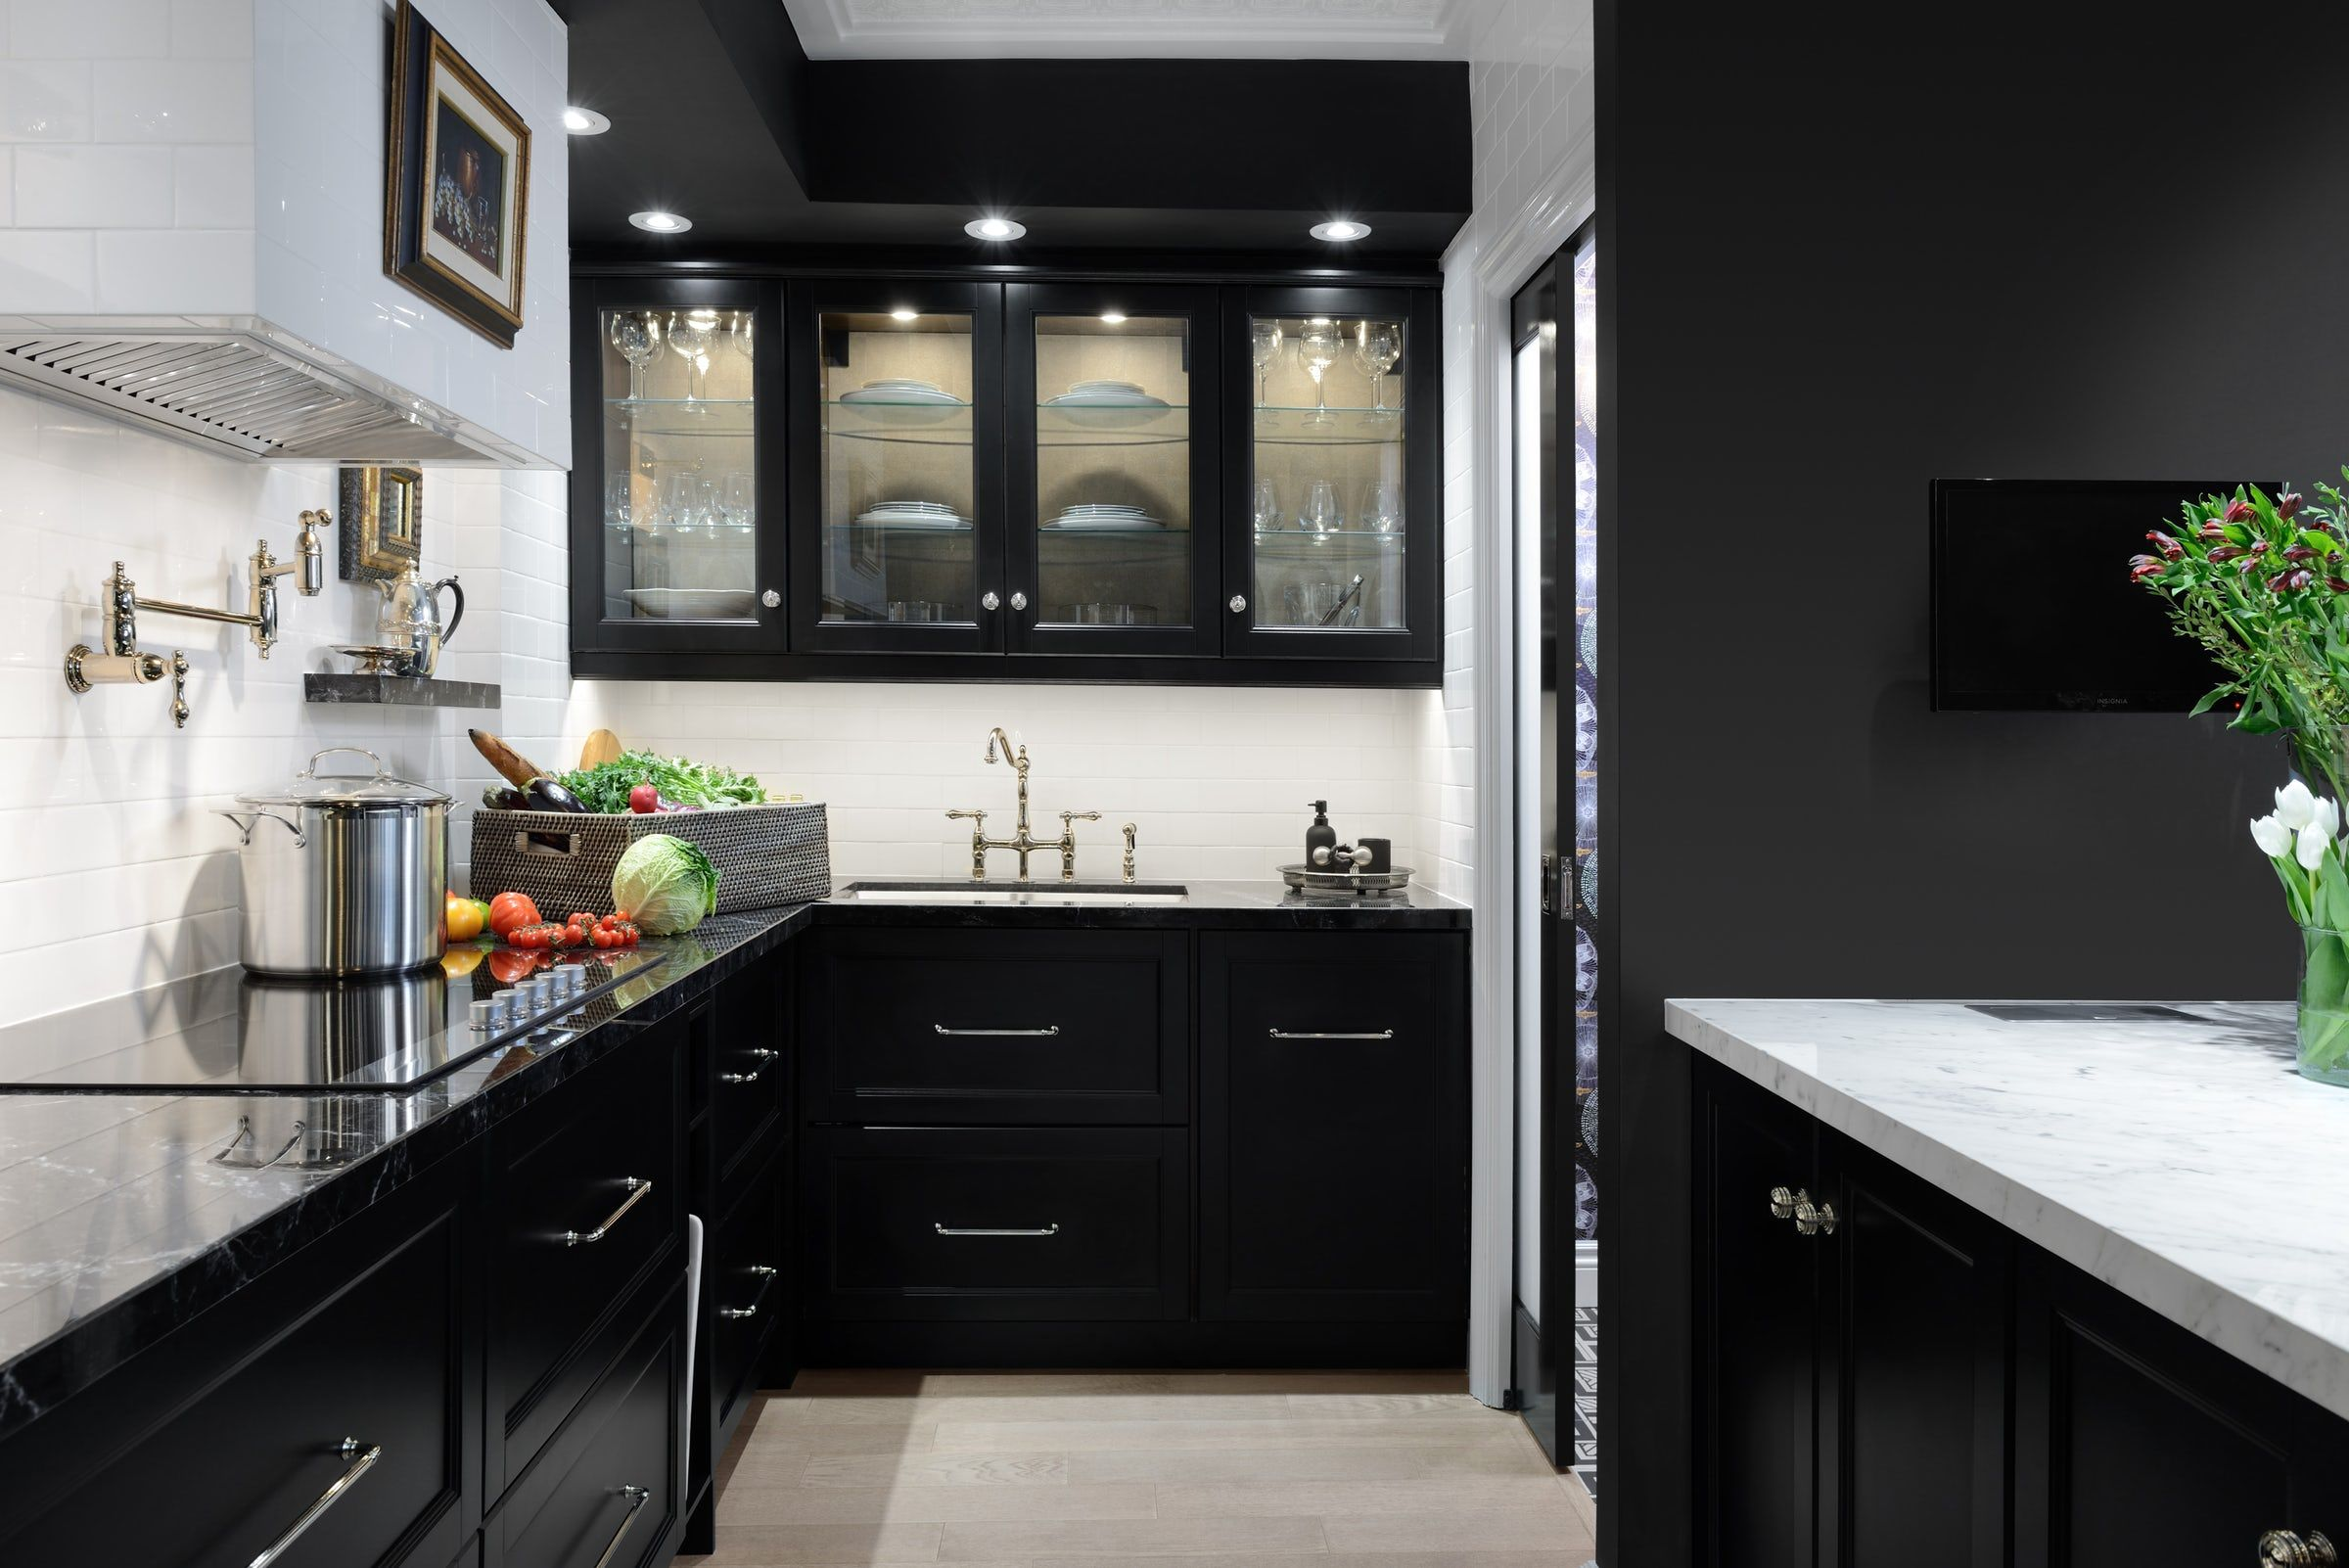 kitchen cabinets com sinks with drainboard built in 30 sophisticated black designs